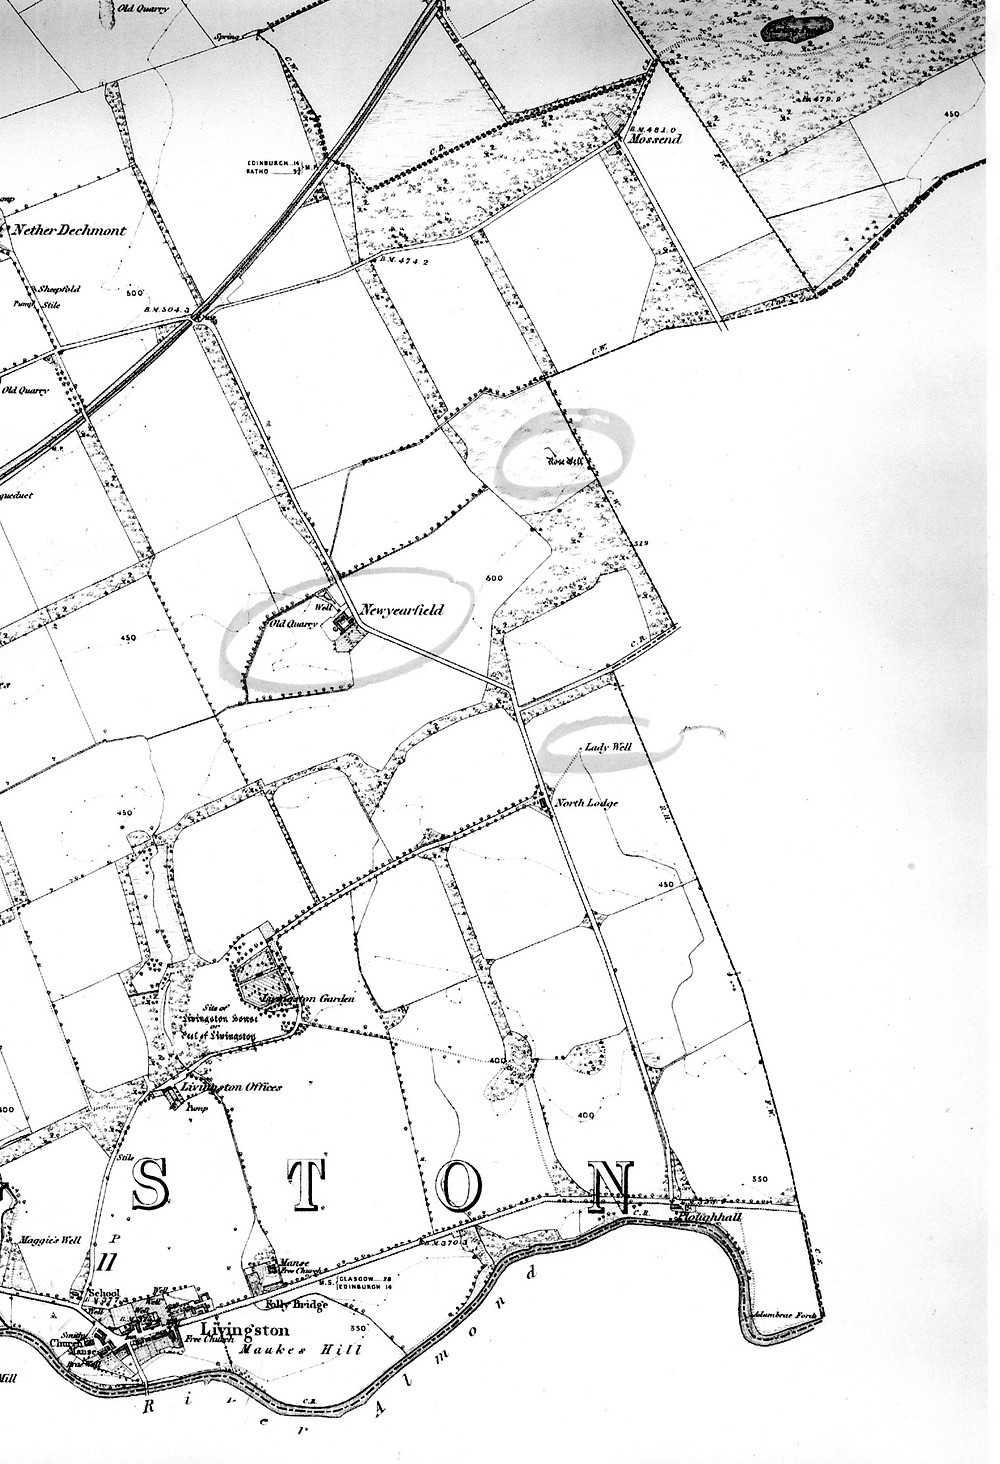 OS Map of the area 1856